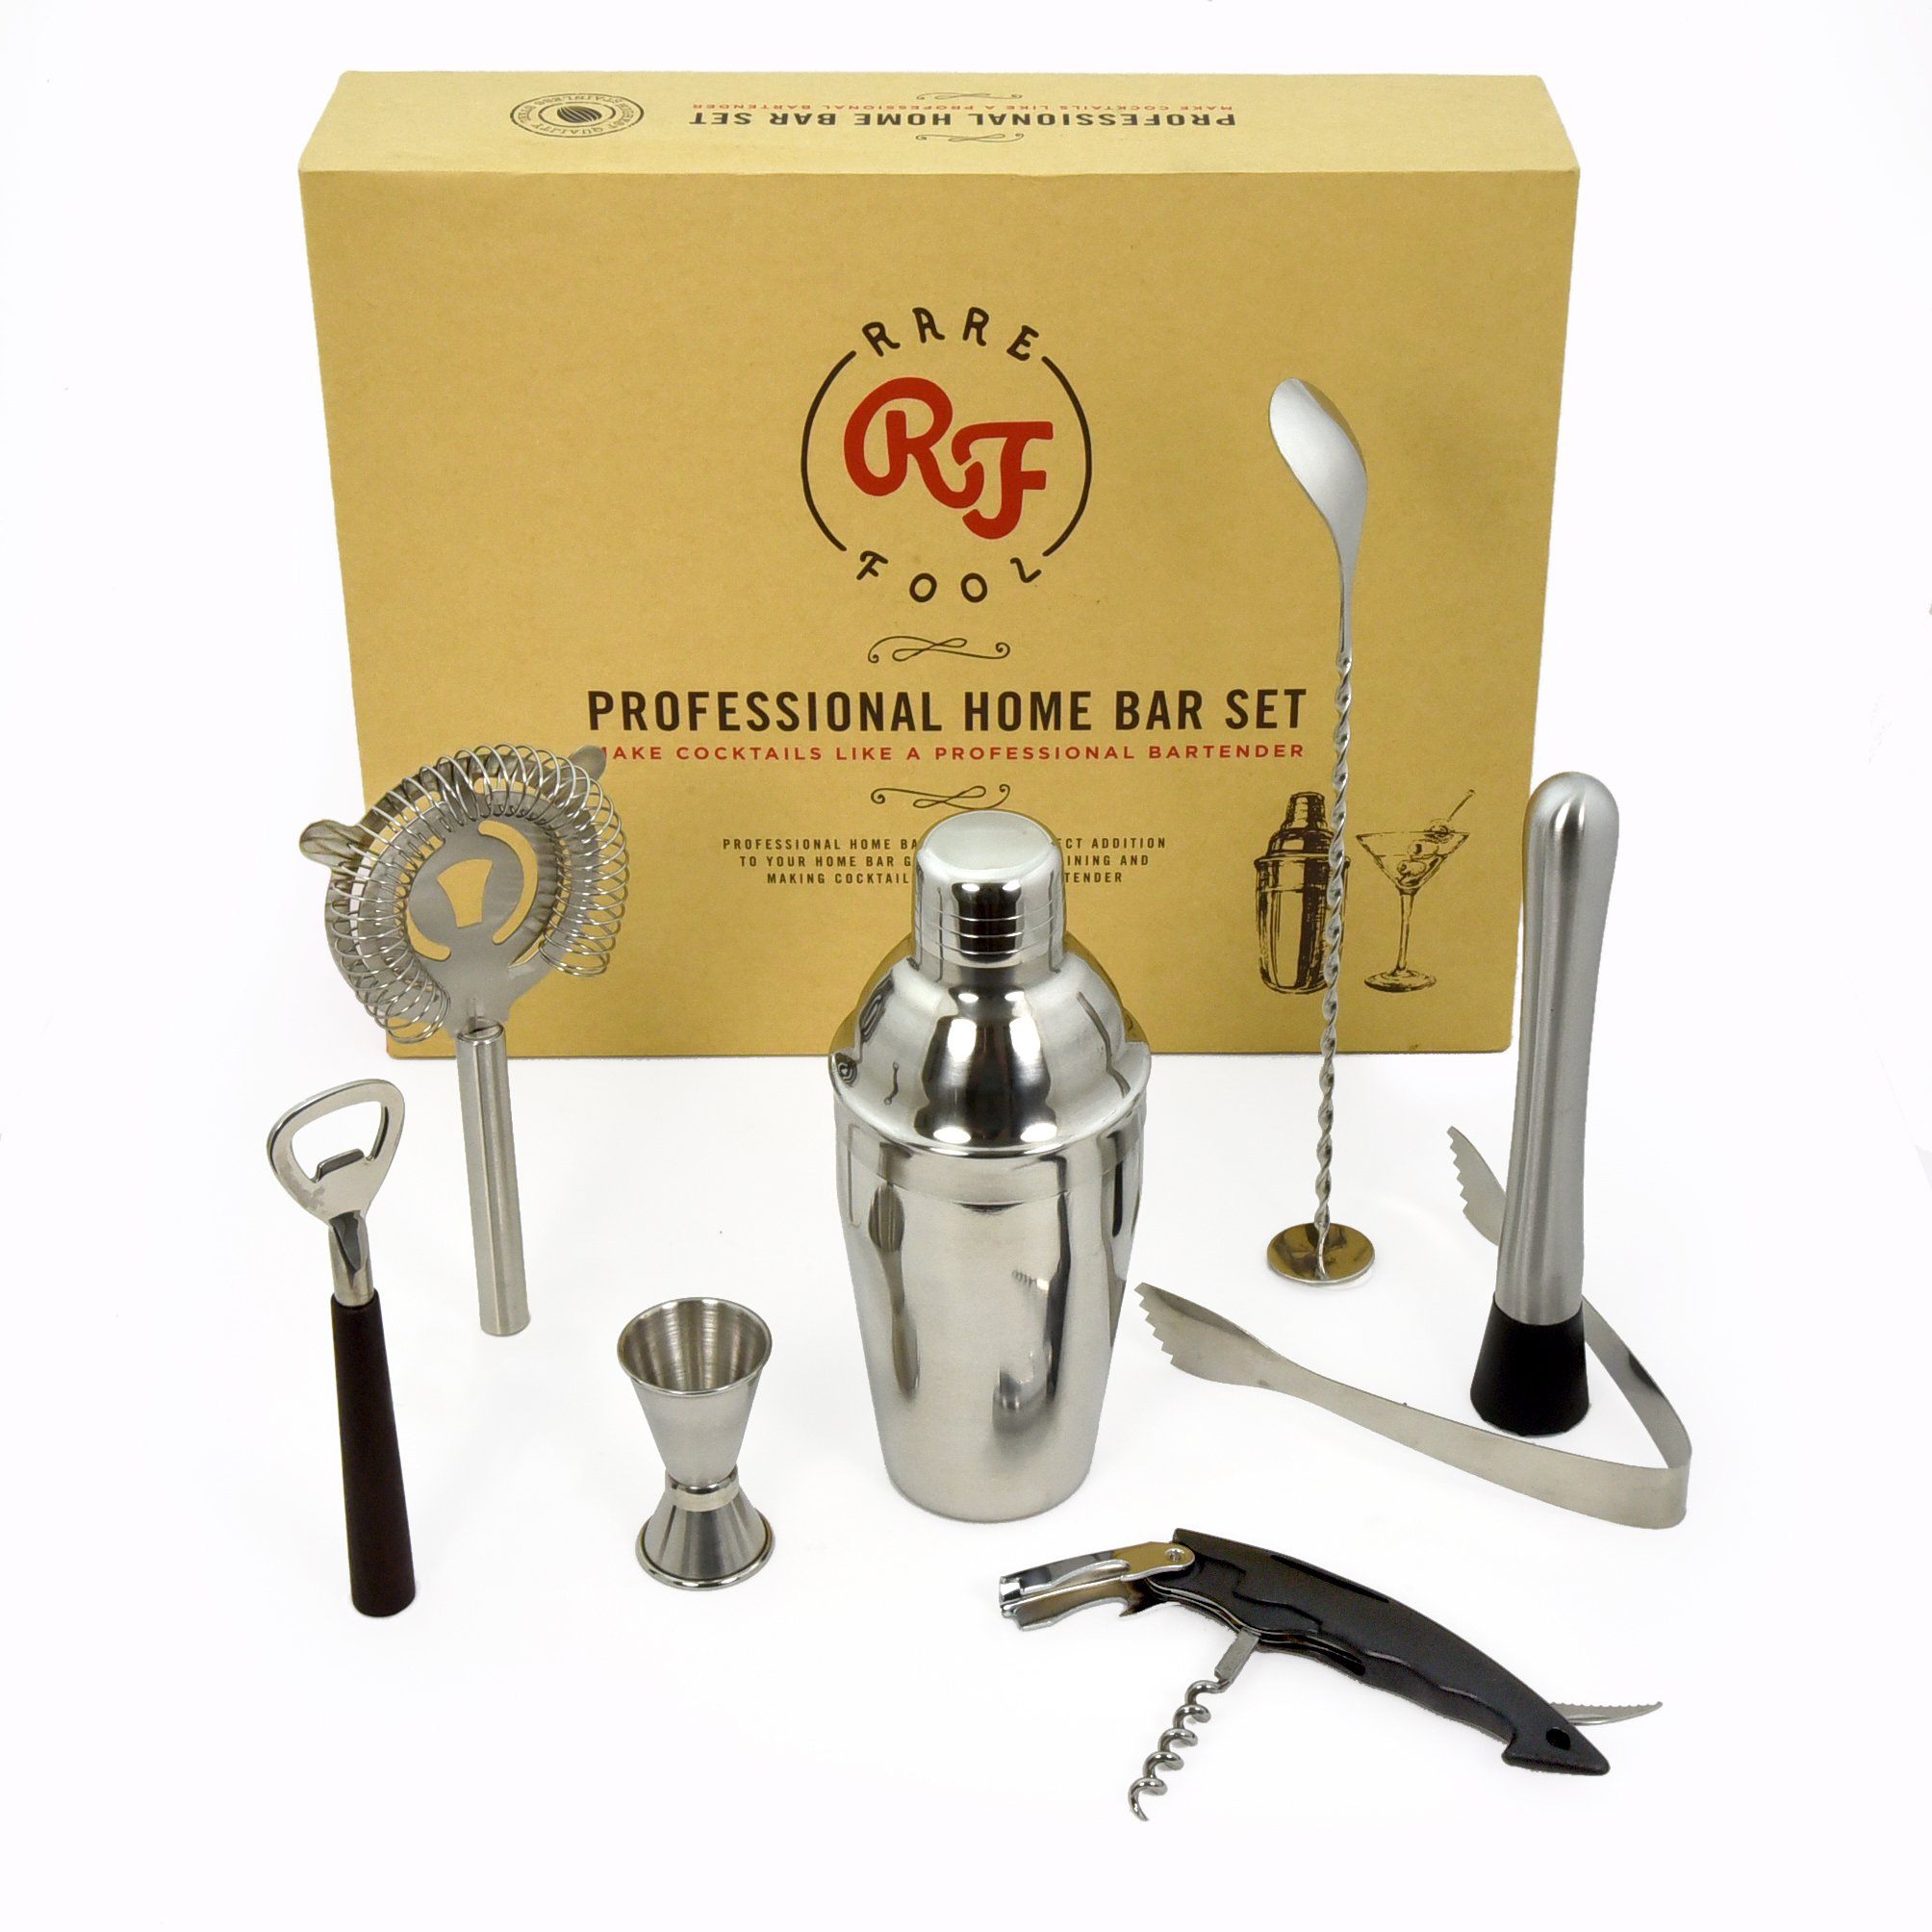 Cocktail Shaker Set Professional Kit 20oz Boston Cobbler Shaker in Gift Box with Recipe eBook, Strainer, Twisted Bar Spoon, Double Jigger, Muddler & Ice Tongs